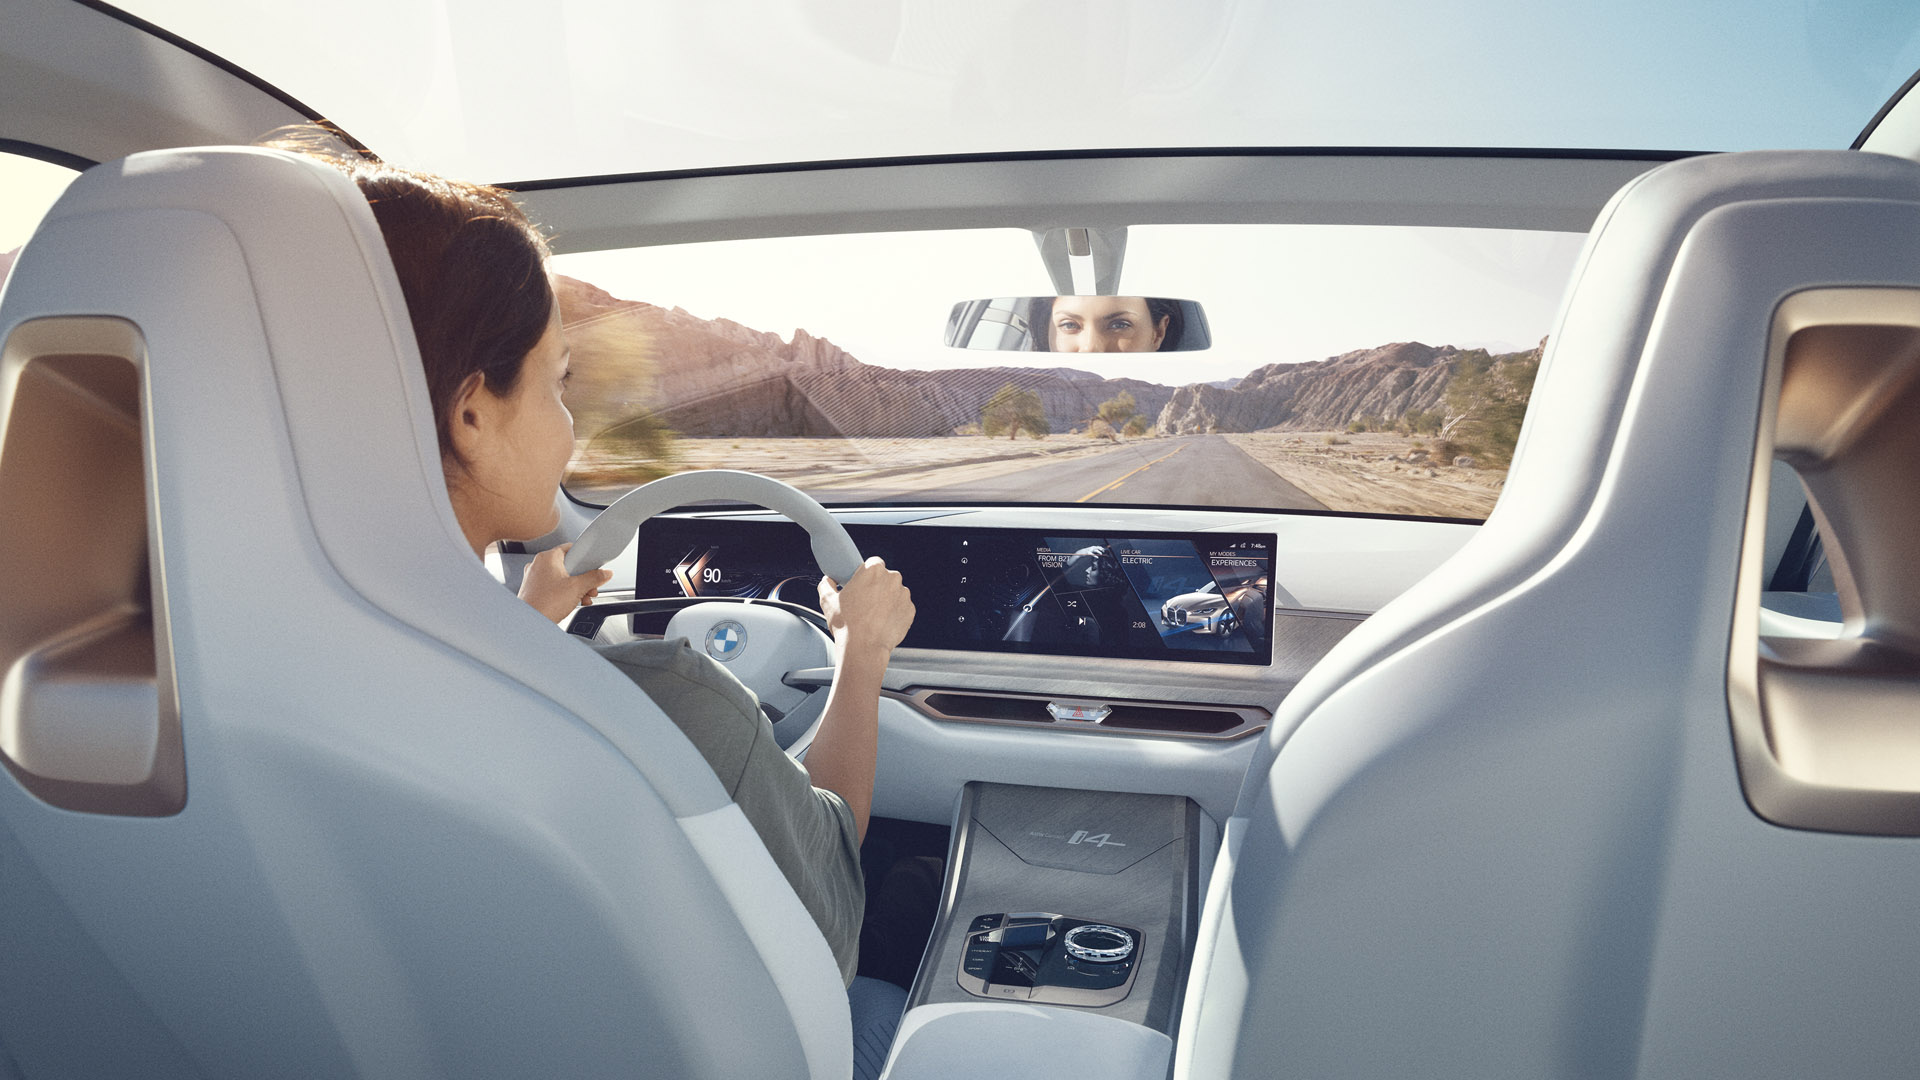 BMW Concept i4 driving